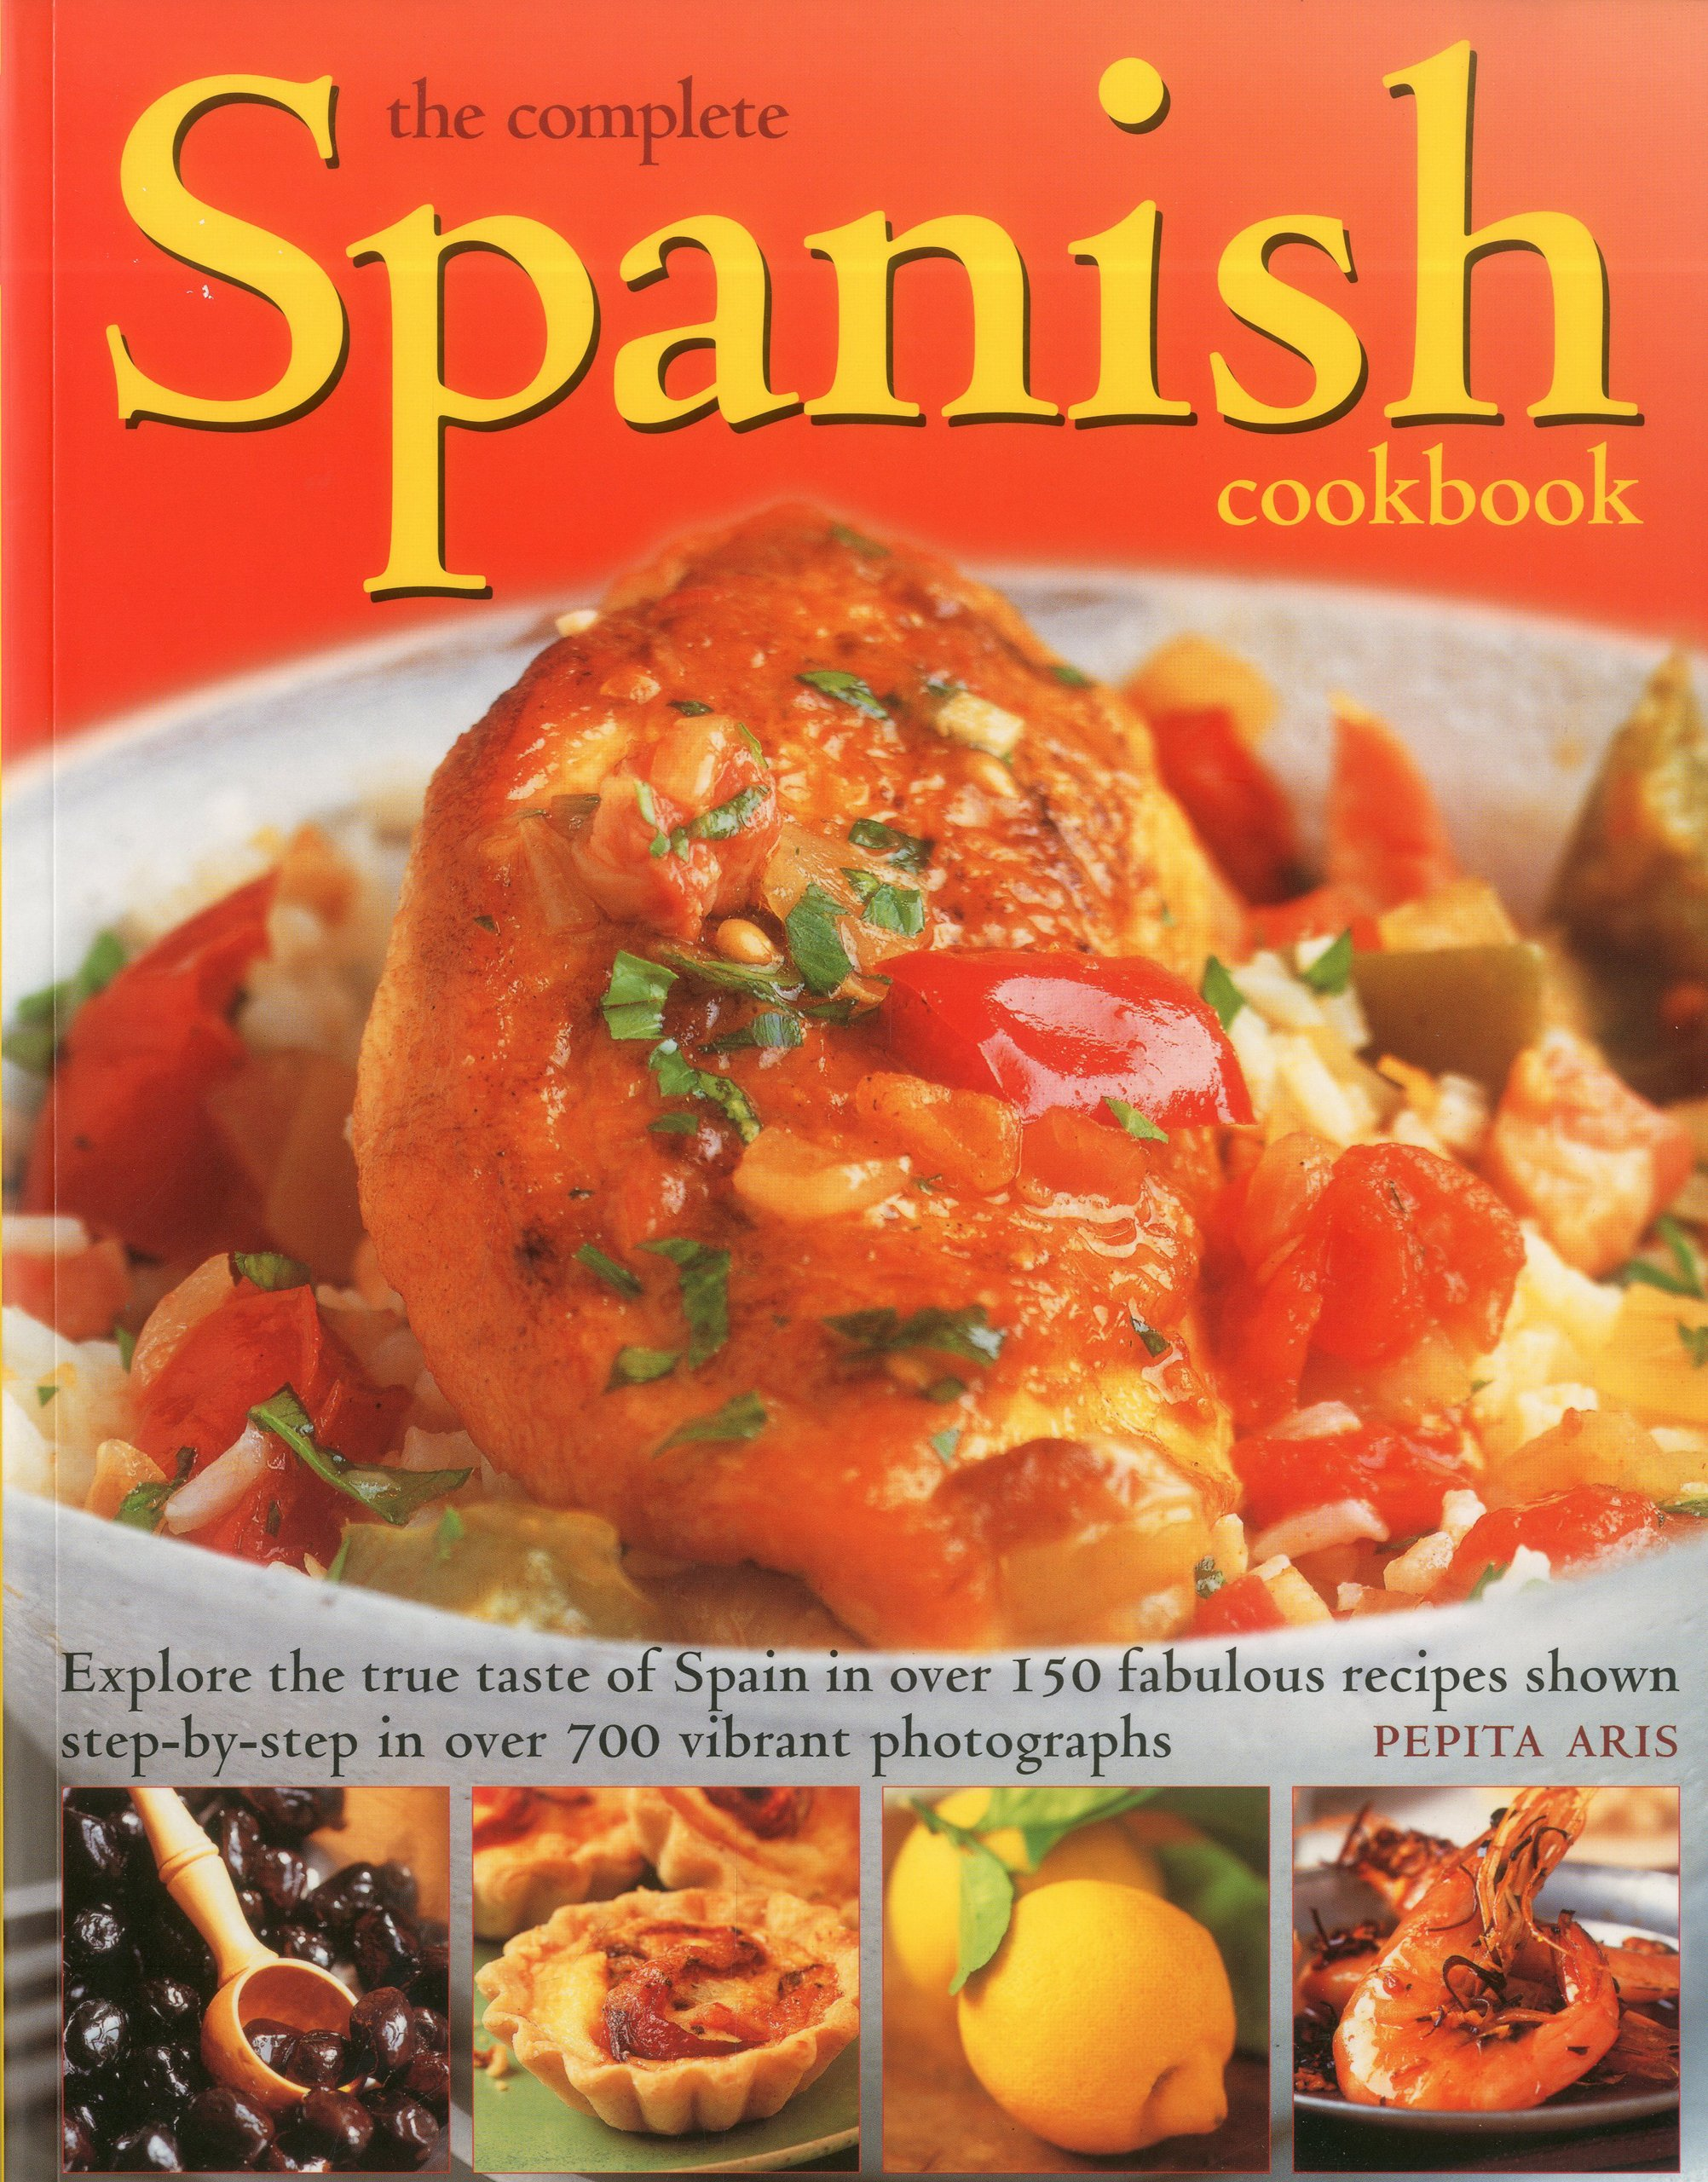 The complete spanish cookbook explore the true taste of spain in the complete spanish cookbook explore the true taste of spain in over 150 fabulous recipes shown step by step in over 700 vibrant photographs forumfinder Gallery